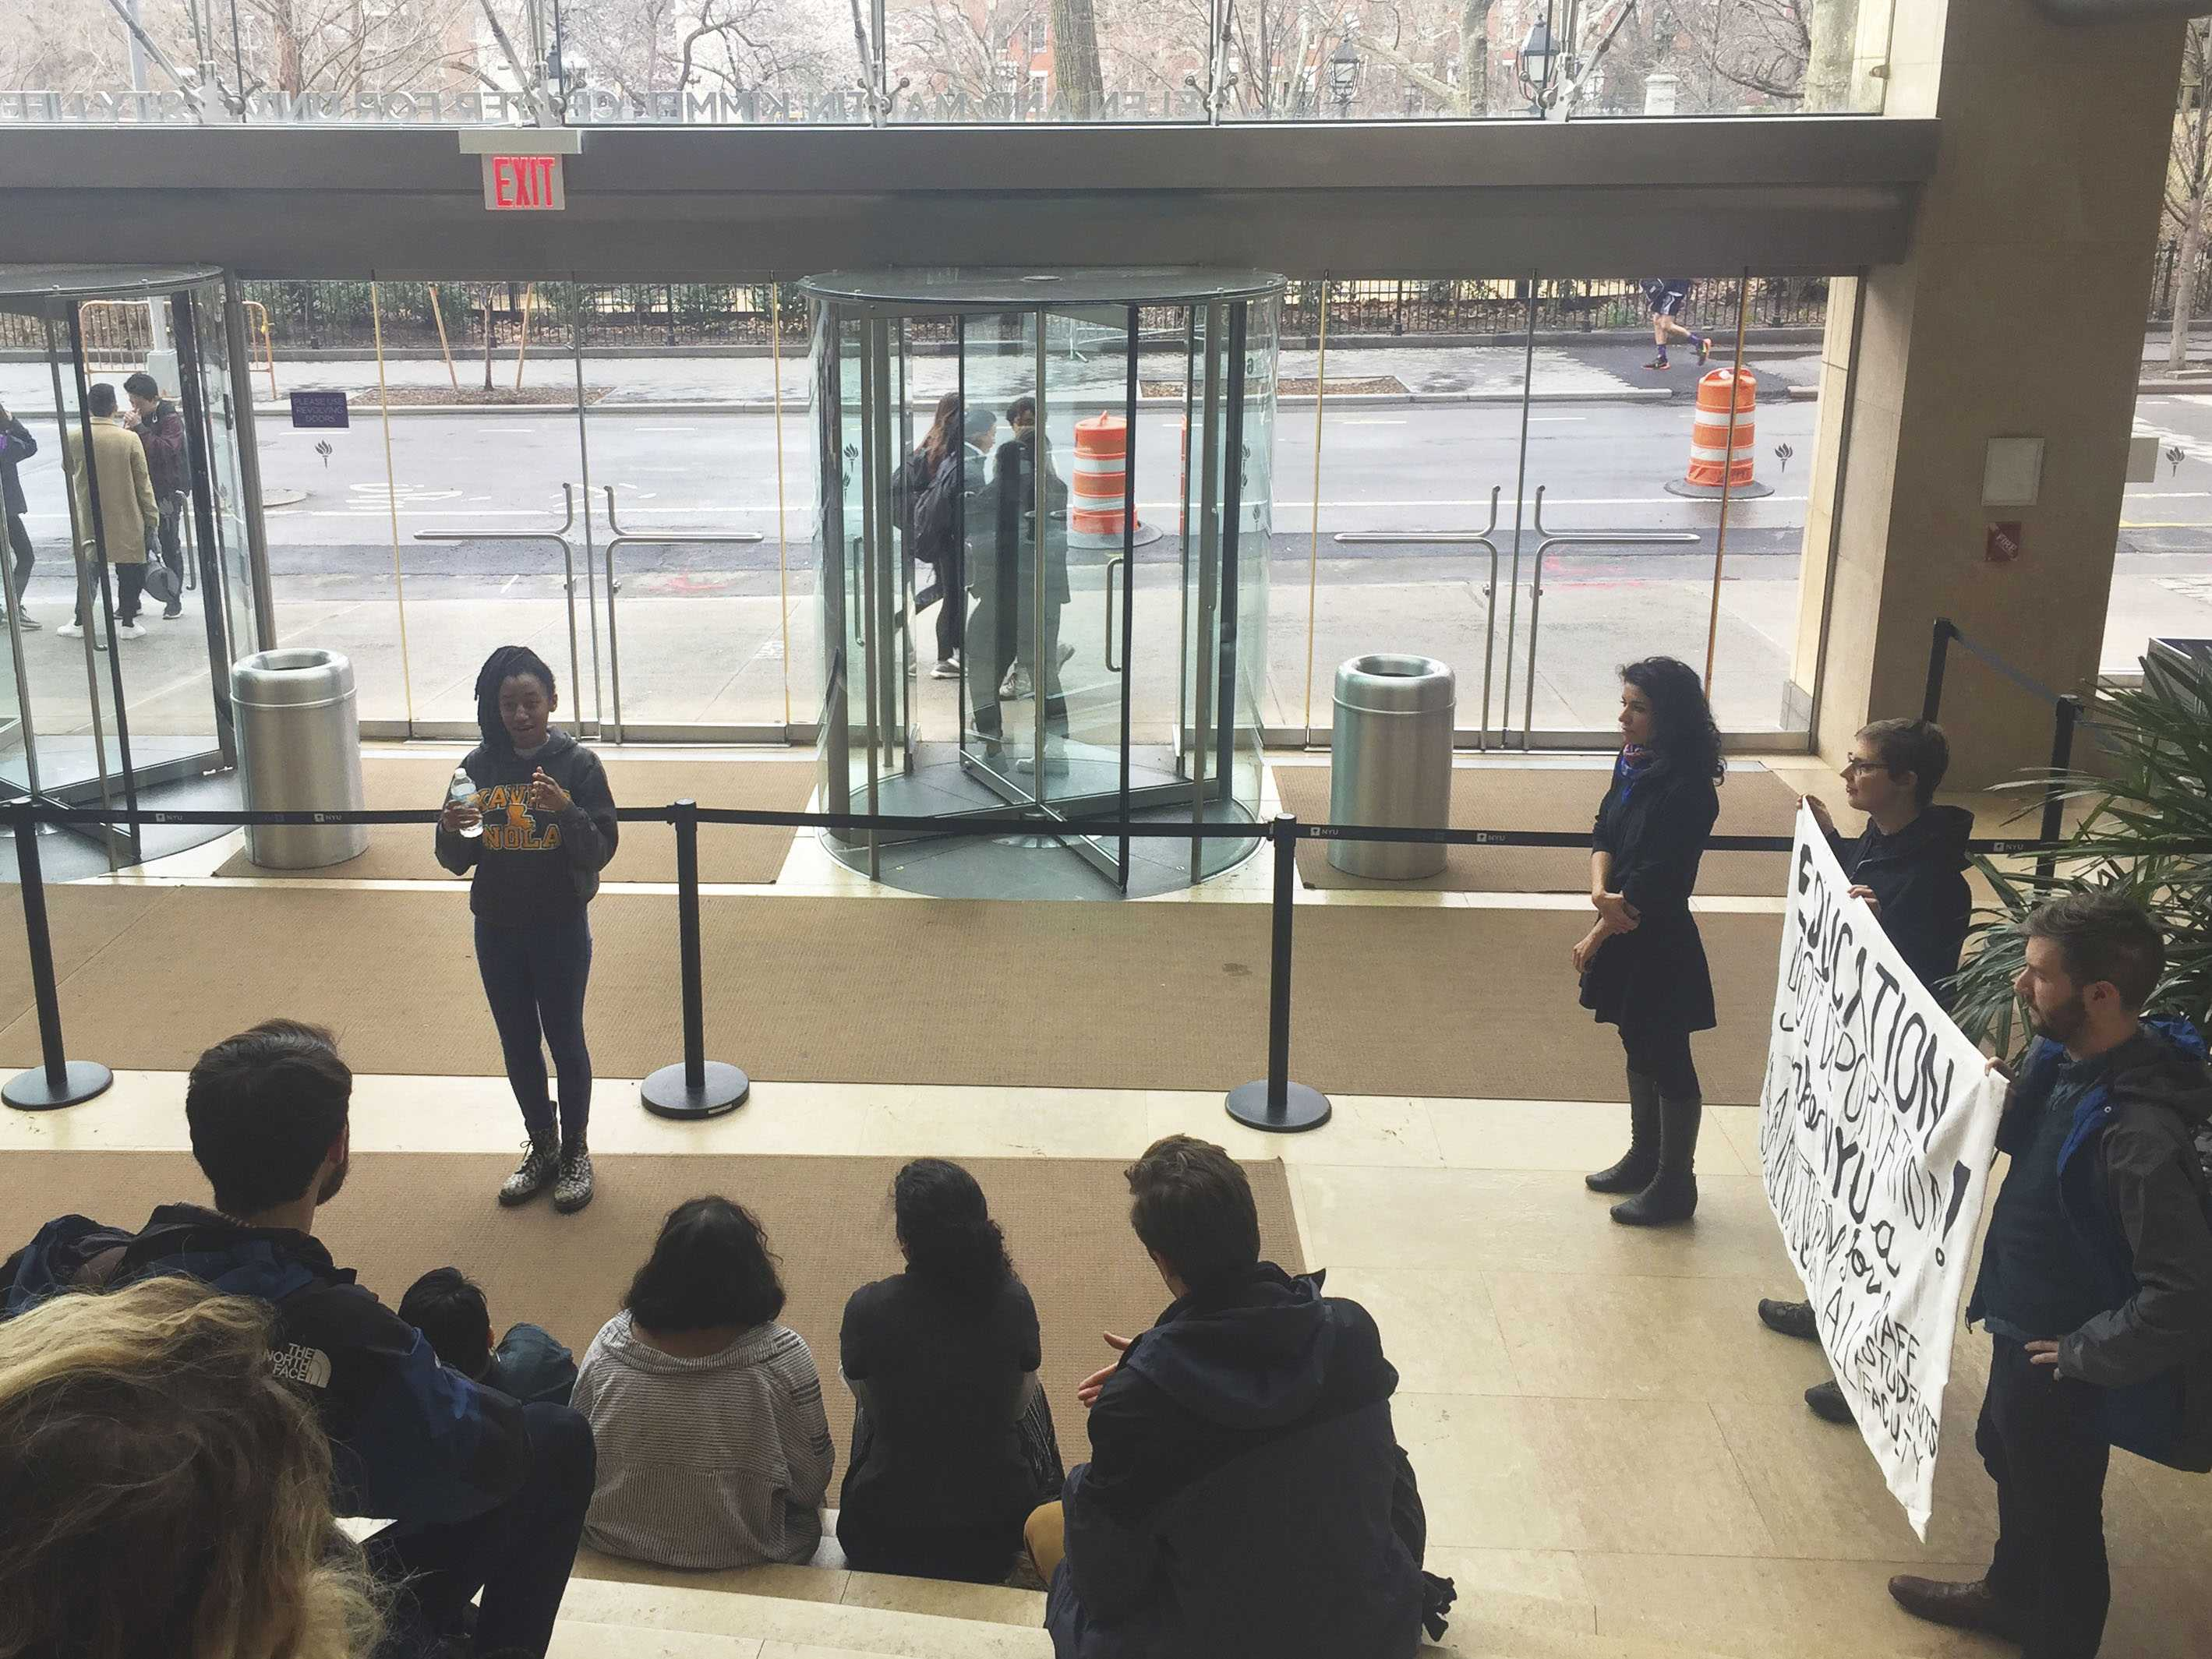 The fight to make NYU a sanctuary campus continued today at a rally at the Kimmel Center for University Life. NYU Sanctuary members read the policy demands and updated the students on their meeting with President Andrew Hamilton.